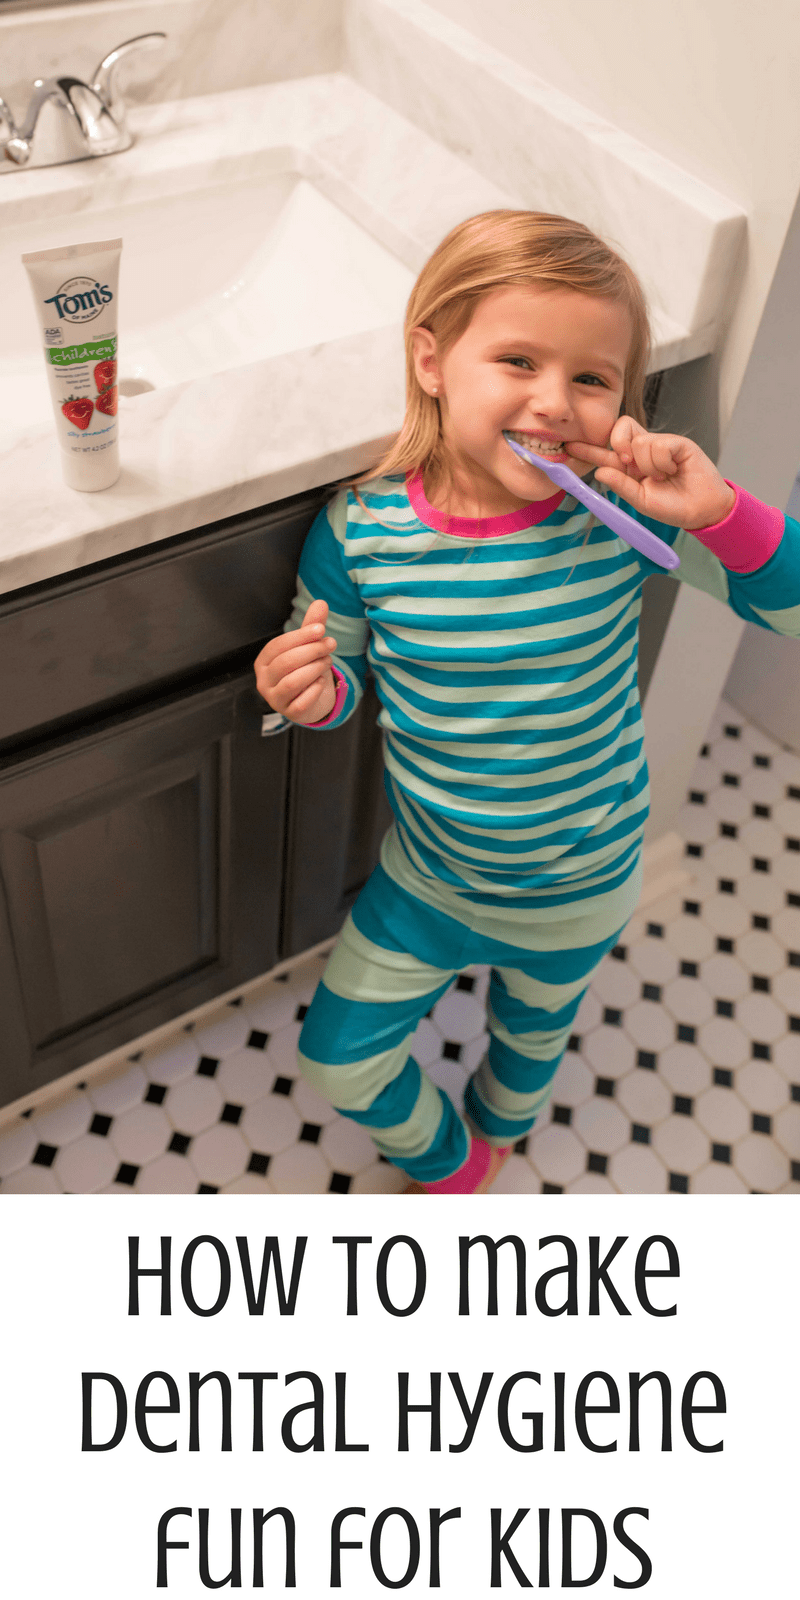 how to make dental hygiene fun for kids